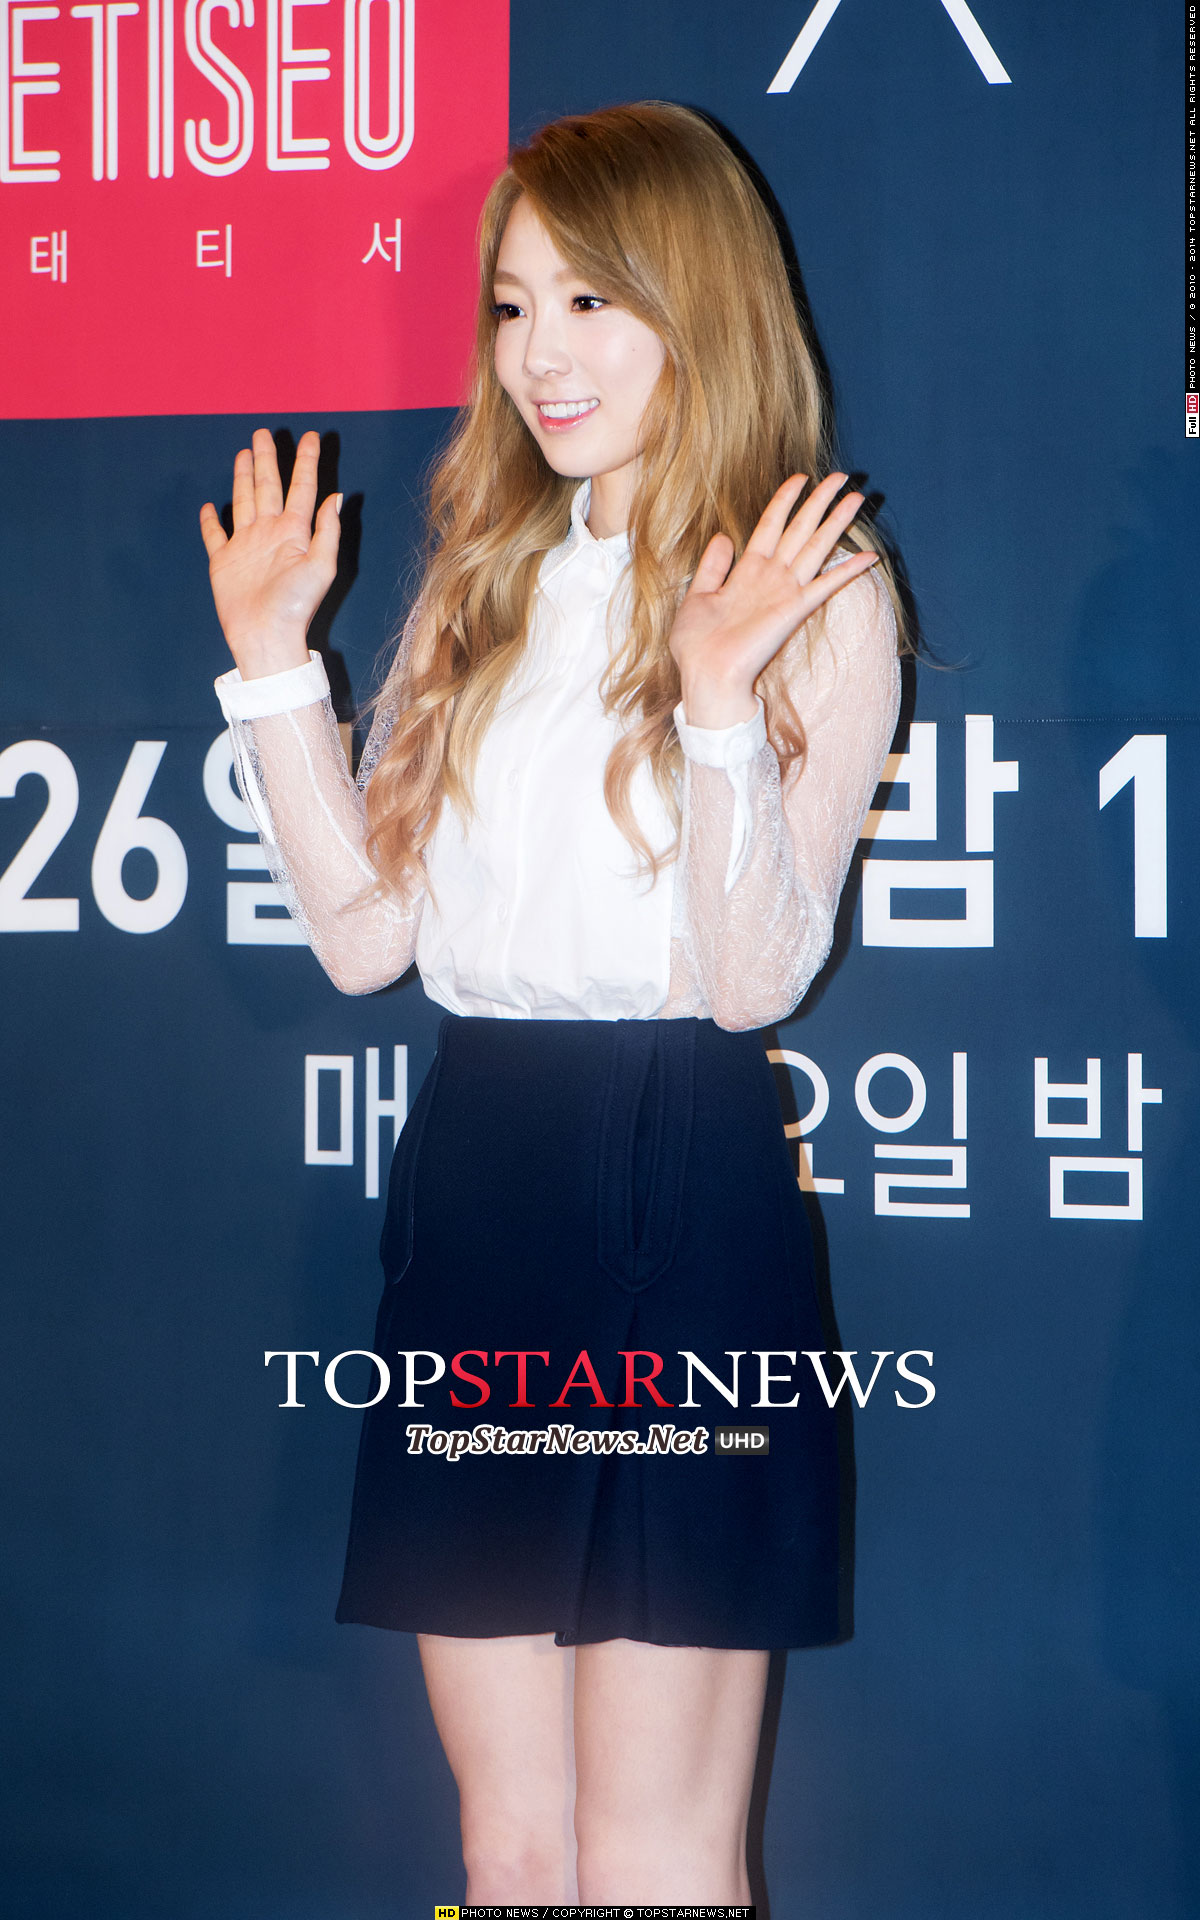 The Taetiseo press event